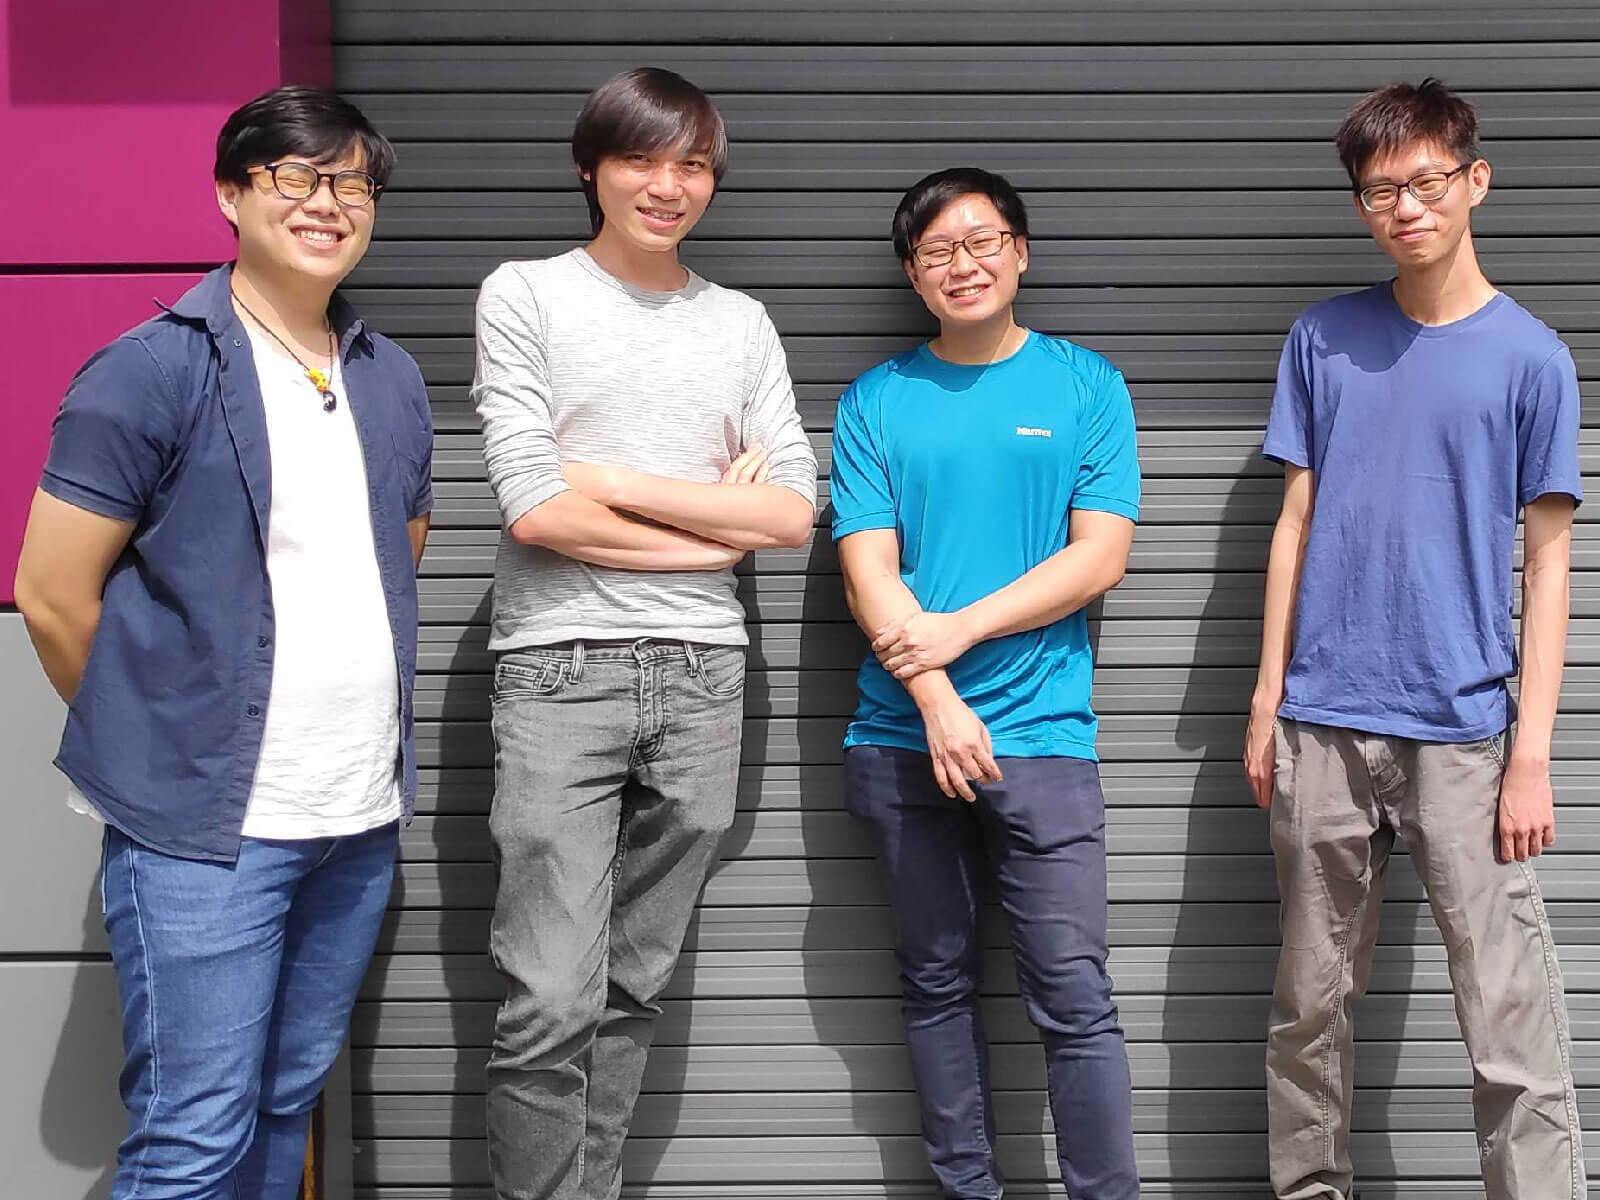 Four DigiPen (Singapore) graduates contribute their computer science expertise to advance the field of autonomous vehicle technologies at Motional